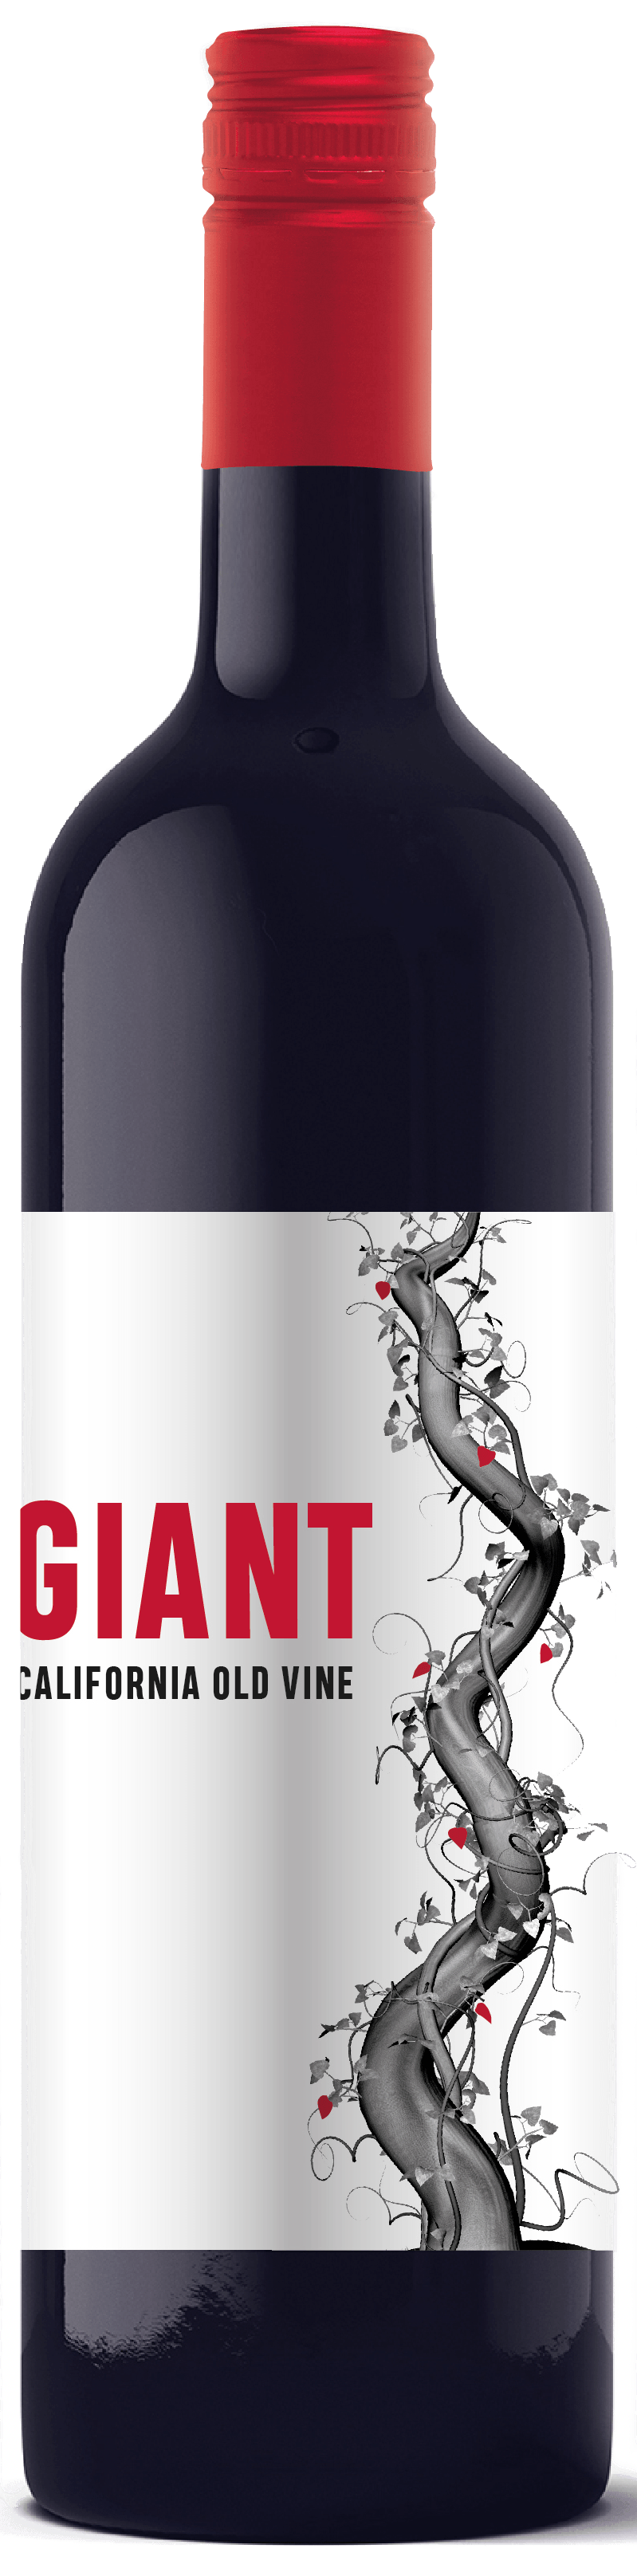 Image 0: Giant Old Vine Red